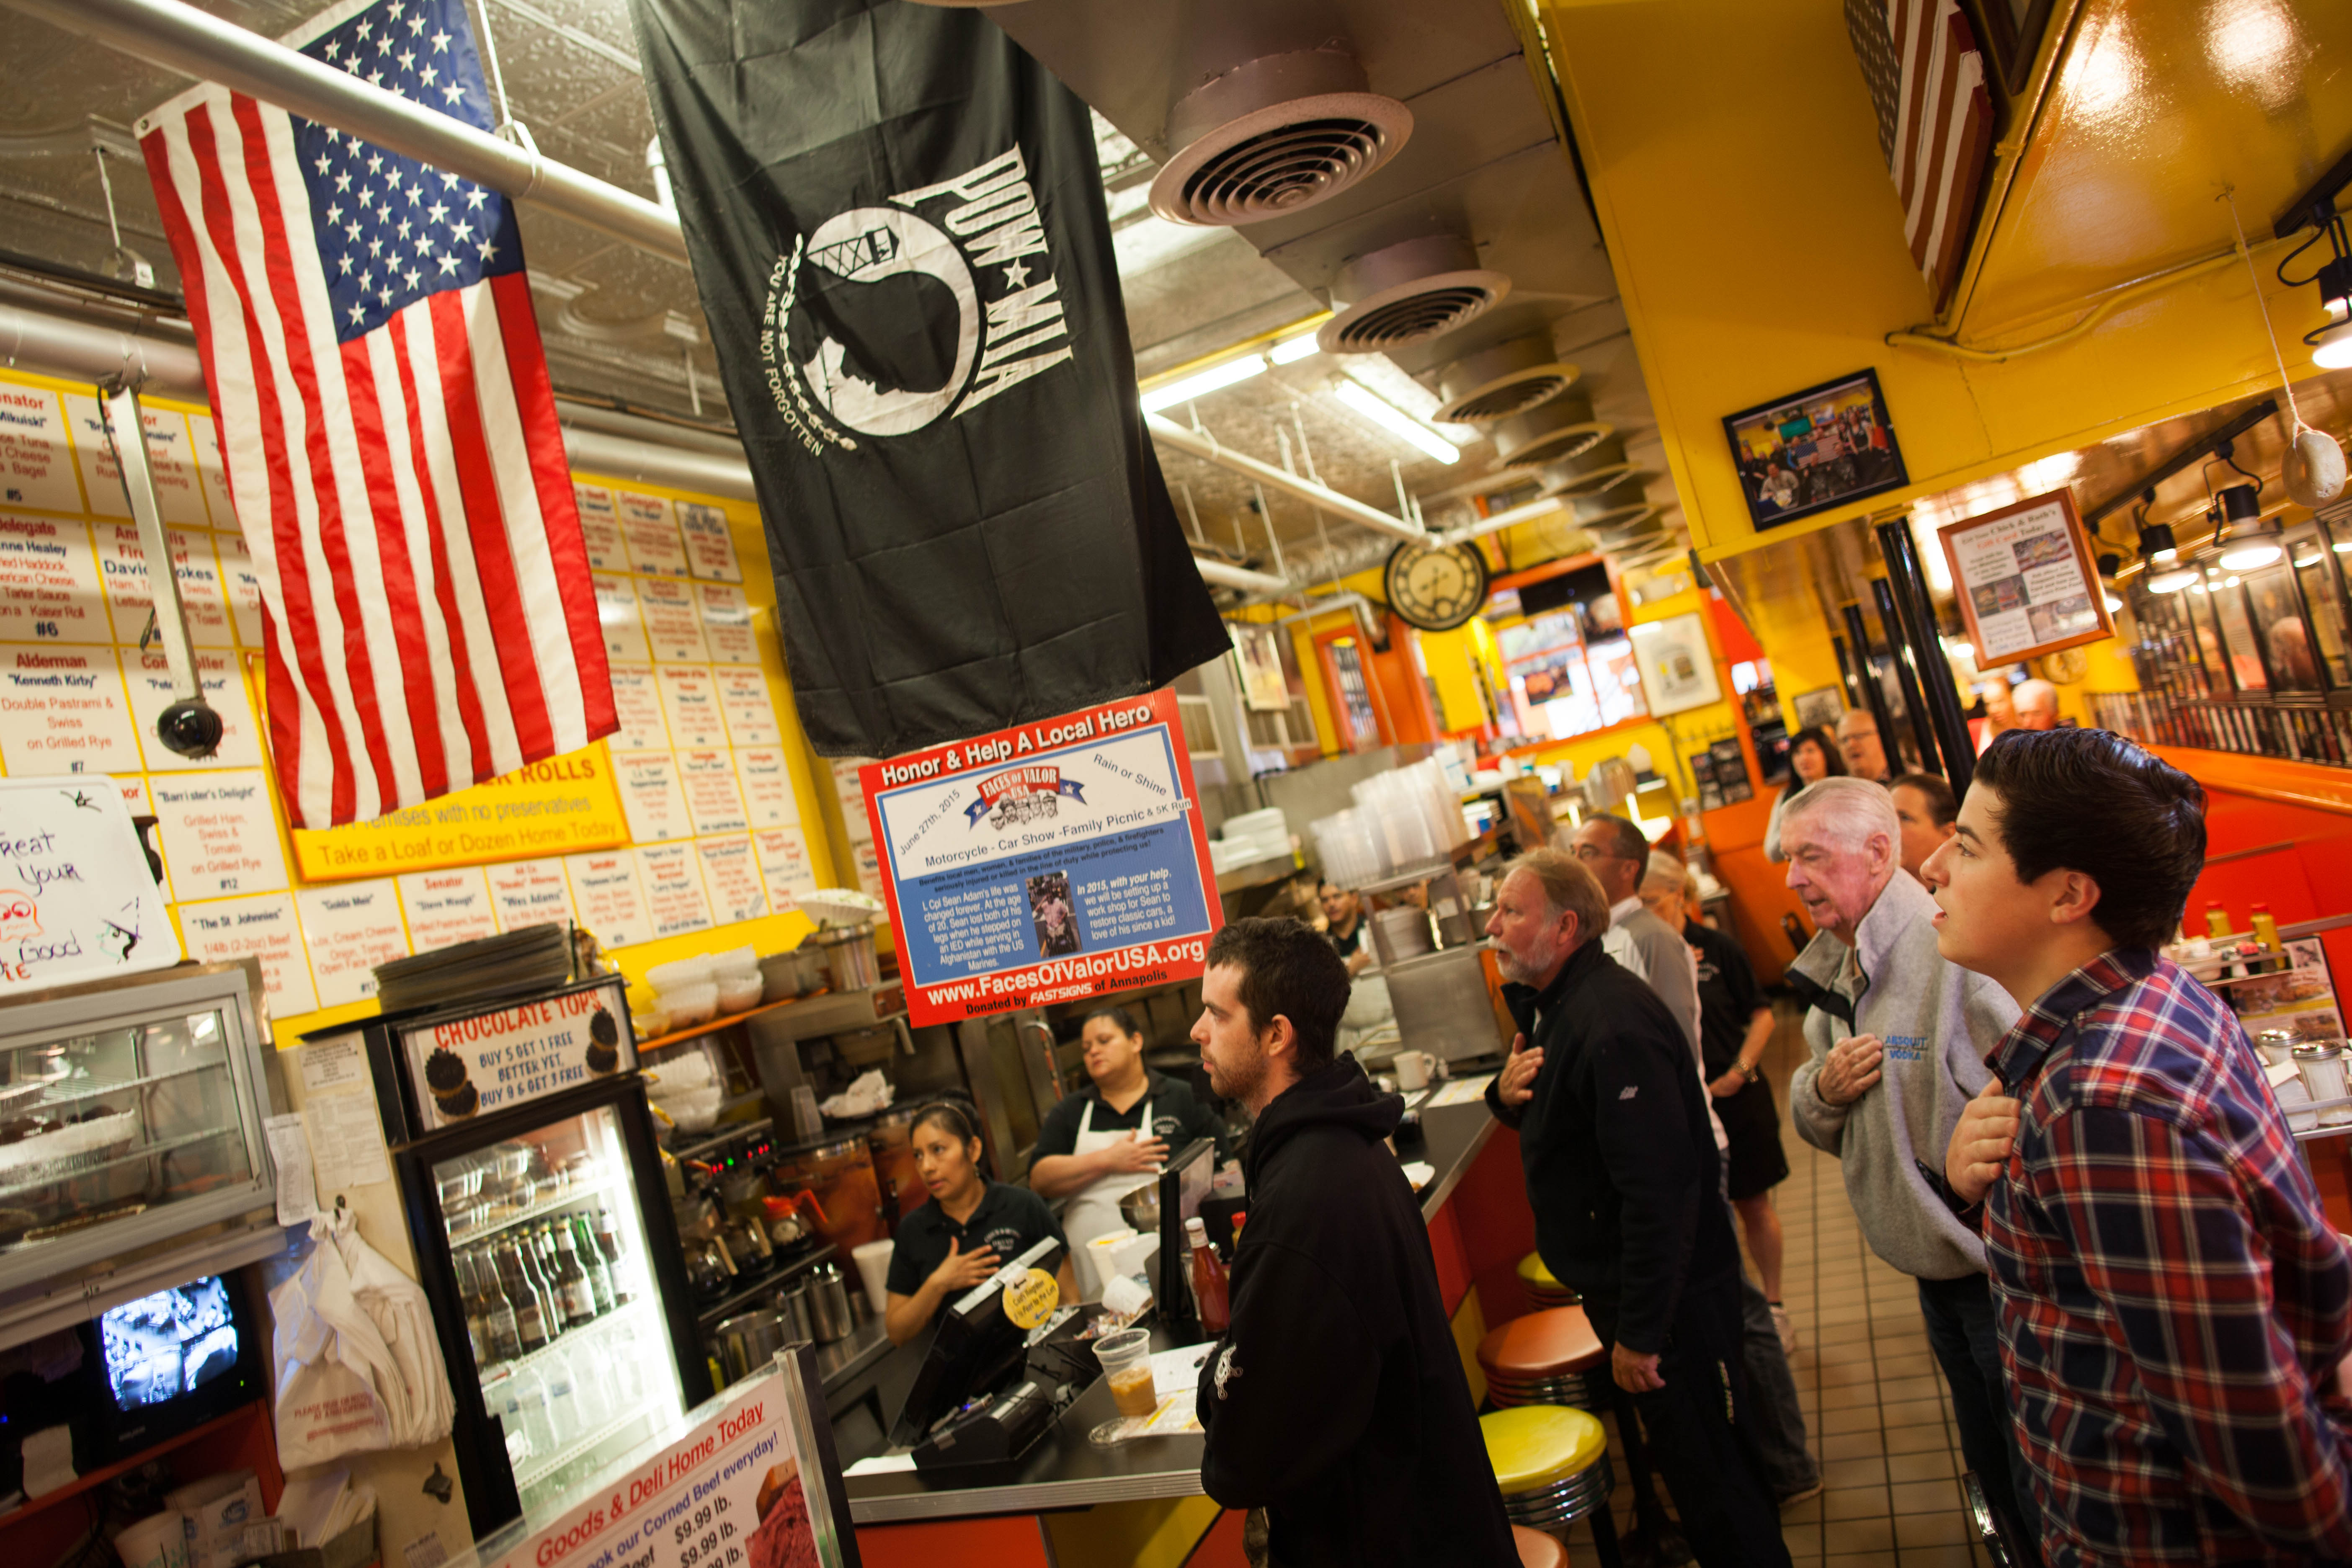 Pledge of allegiance at Chick and Ruth's Delly in Annapolis, MD